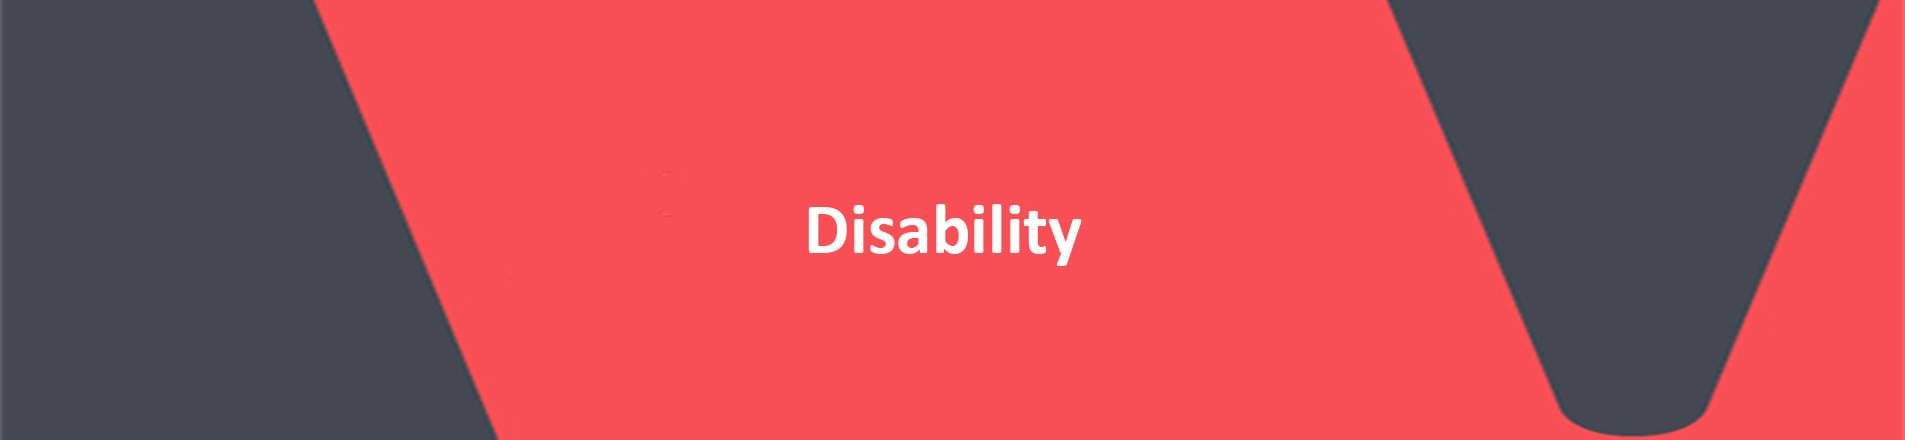 "Image of VERCIDA banner.  Red background with word ""disability"" in white letters."